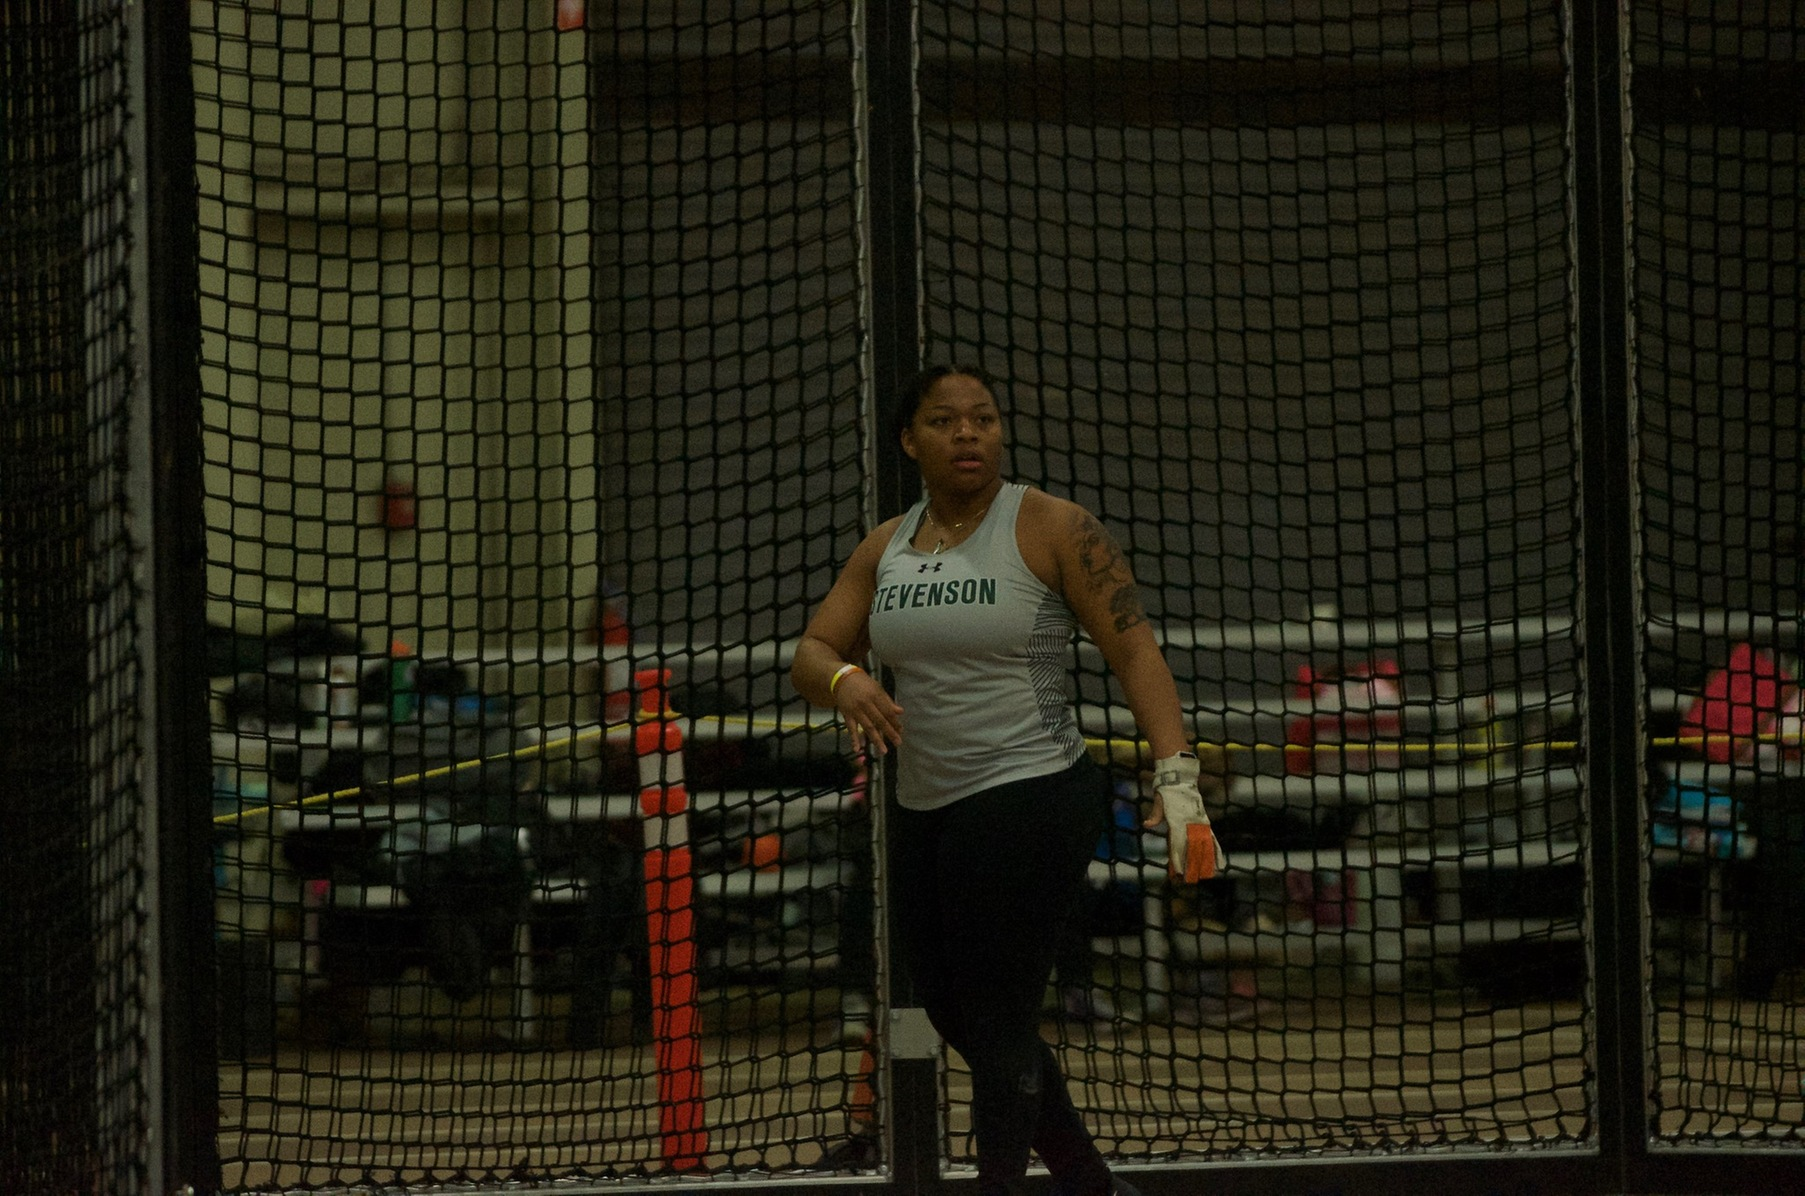 Ani Sets School Record in Hammer, Places Sixth at AARTFC Championships